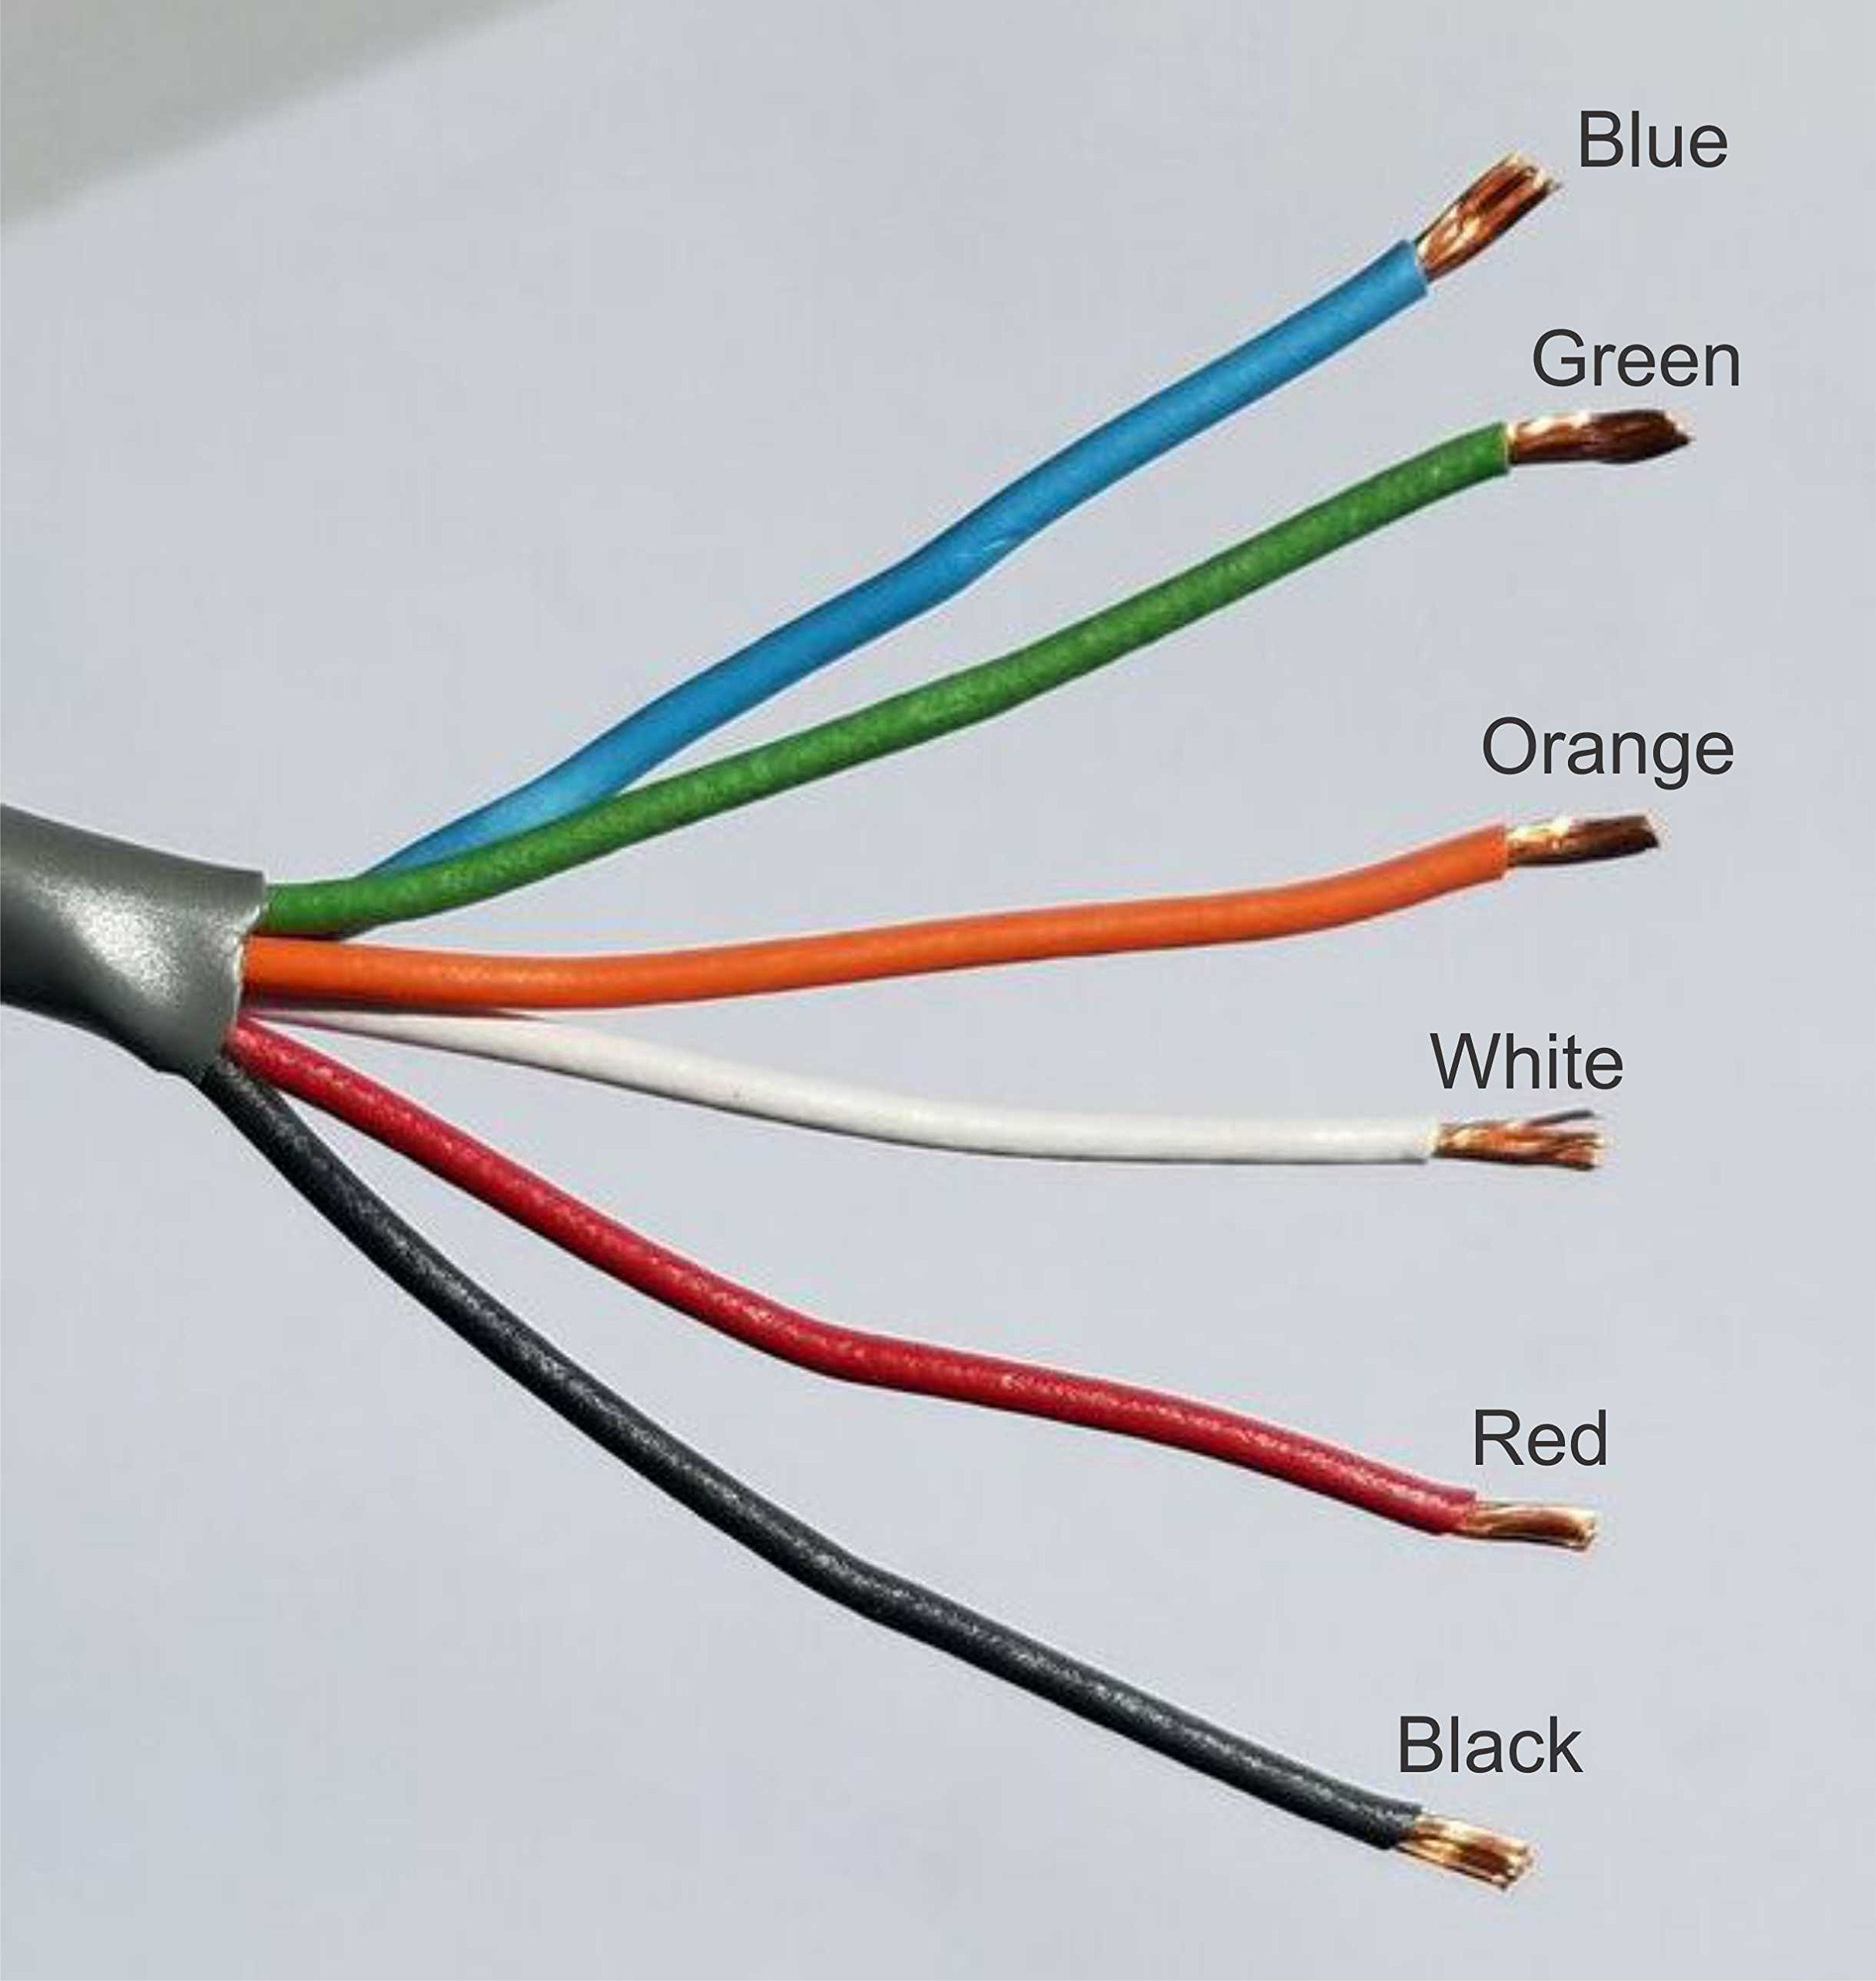 18ga wires in a 6-Conductor, stranded cable with grey PVC jacket, class 2 approved for low voltage applications (20ft) by Oretronix (Image #2)